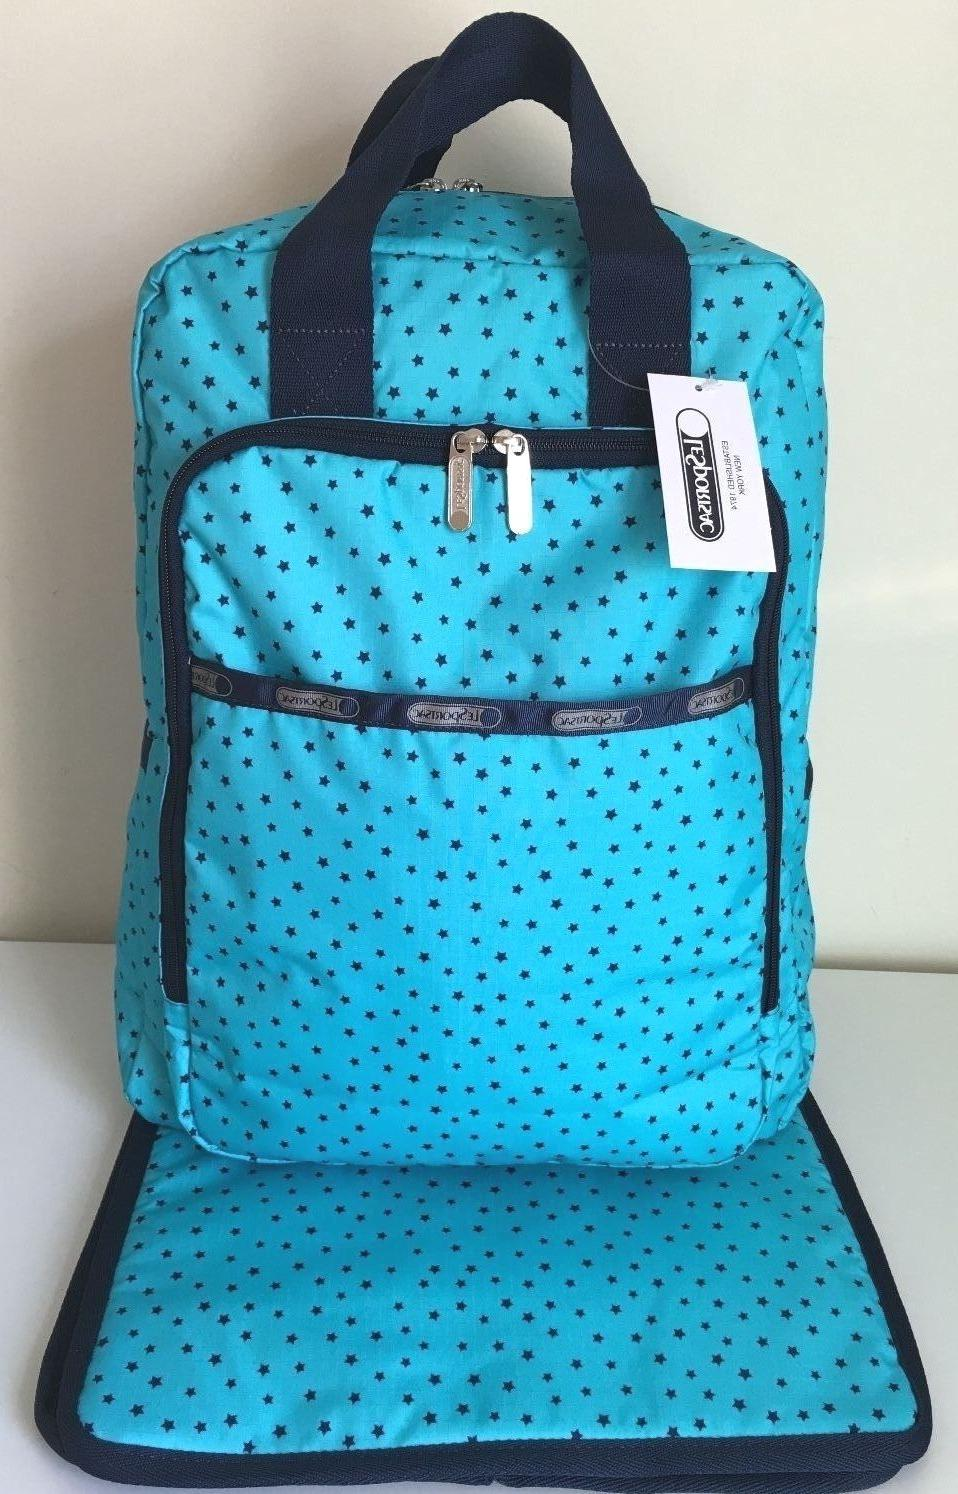 BABY BACKPACK CHANGING PAD STARS